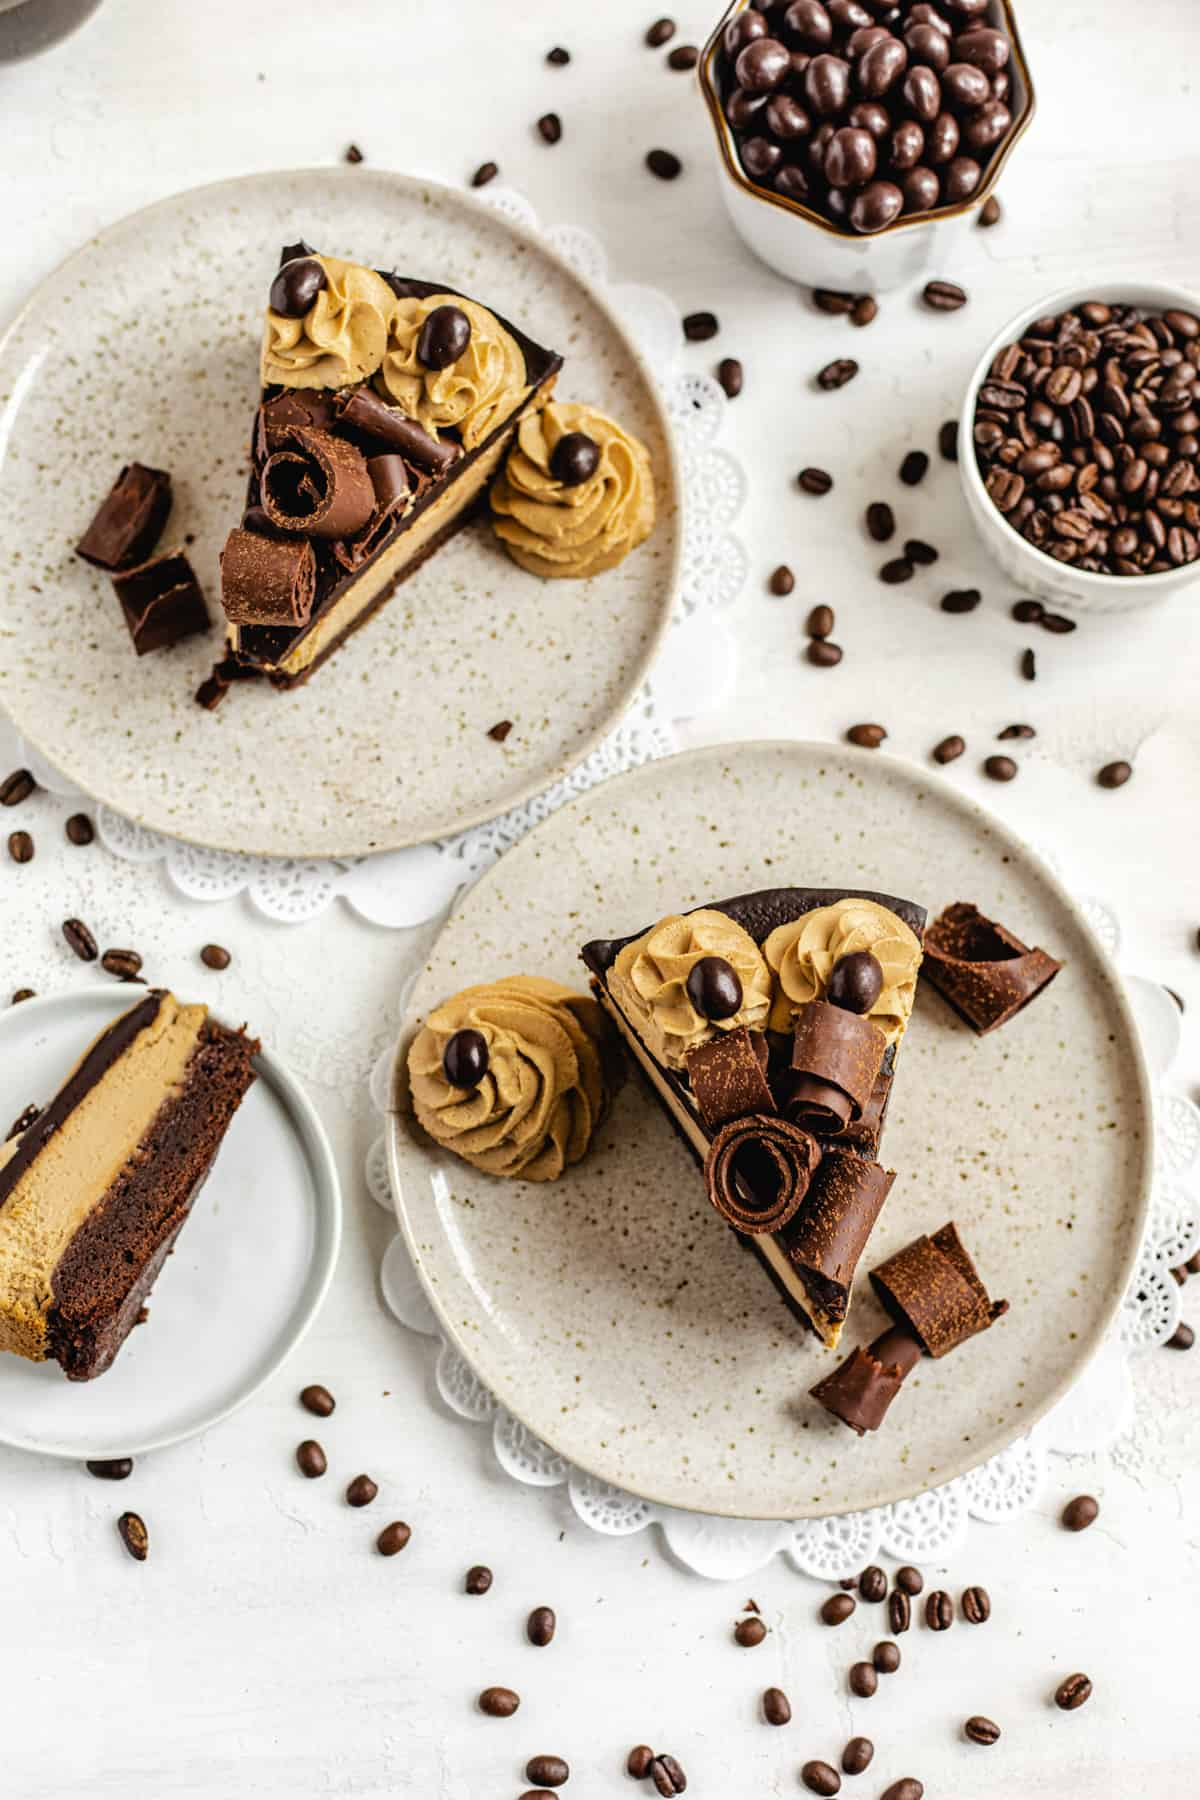 three slices of cheesecake on three plates with coffee beans around them